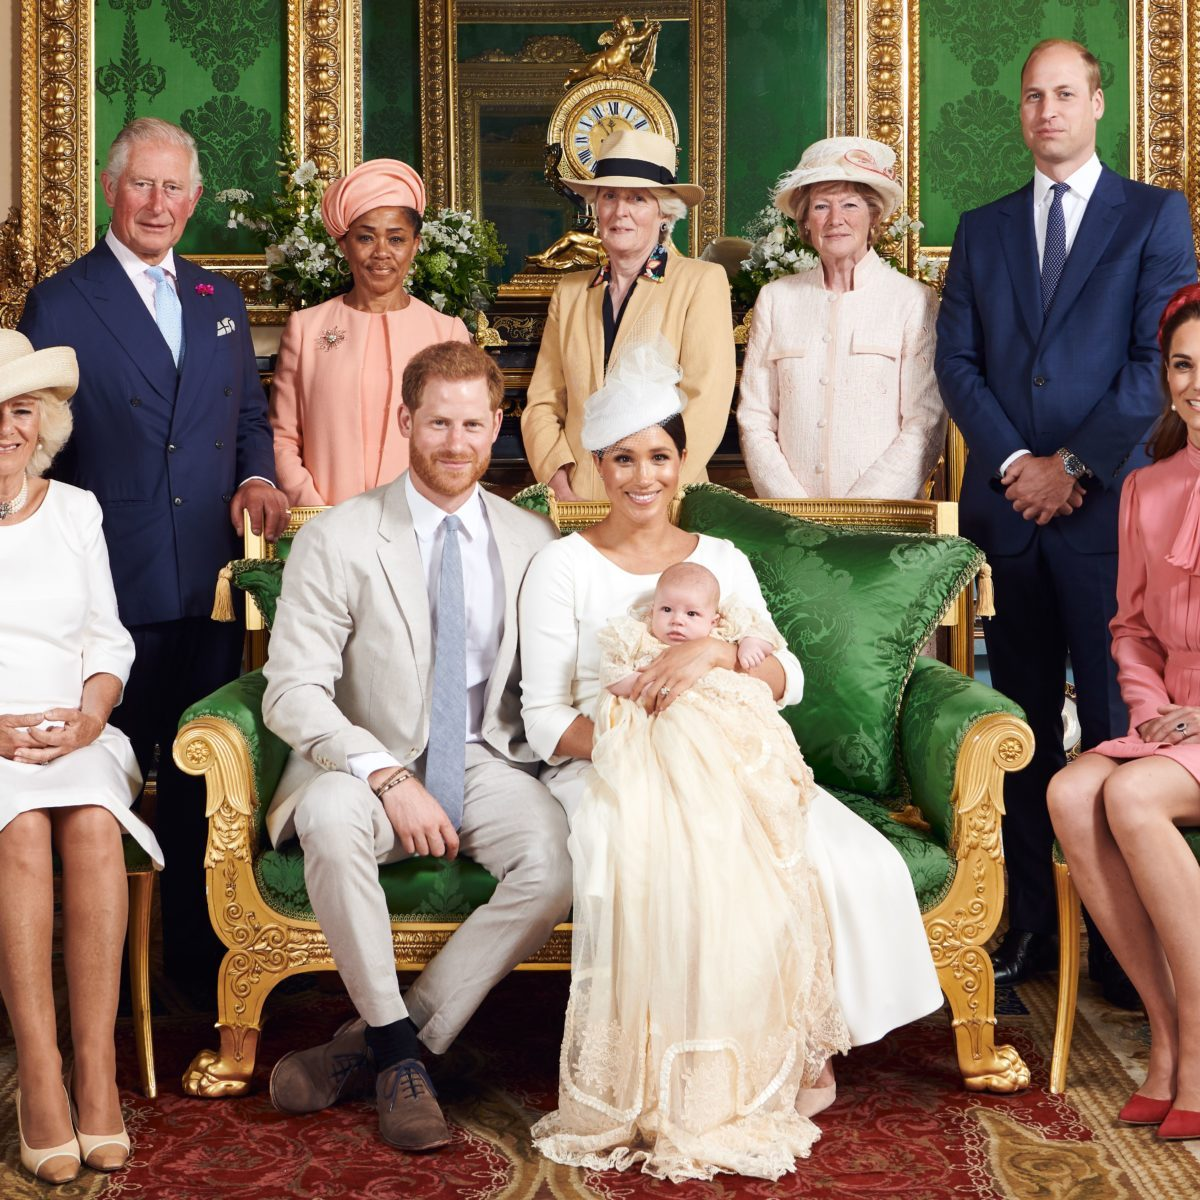 14 Parenting Rules the Royals Have to Follow